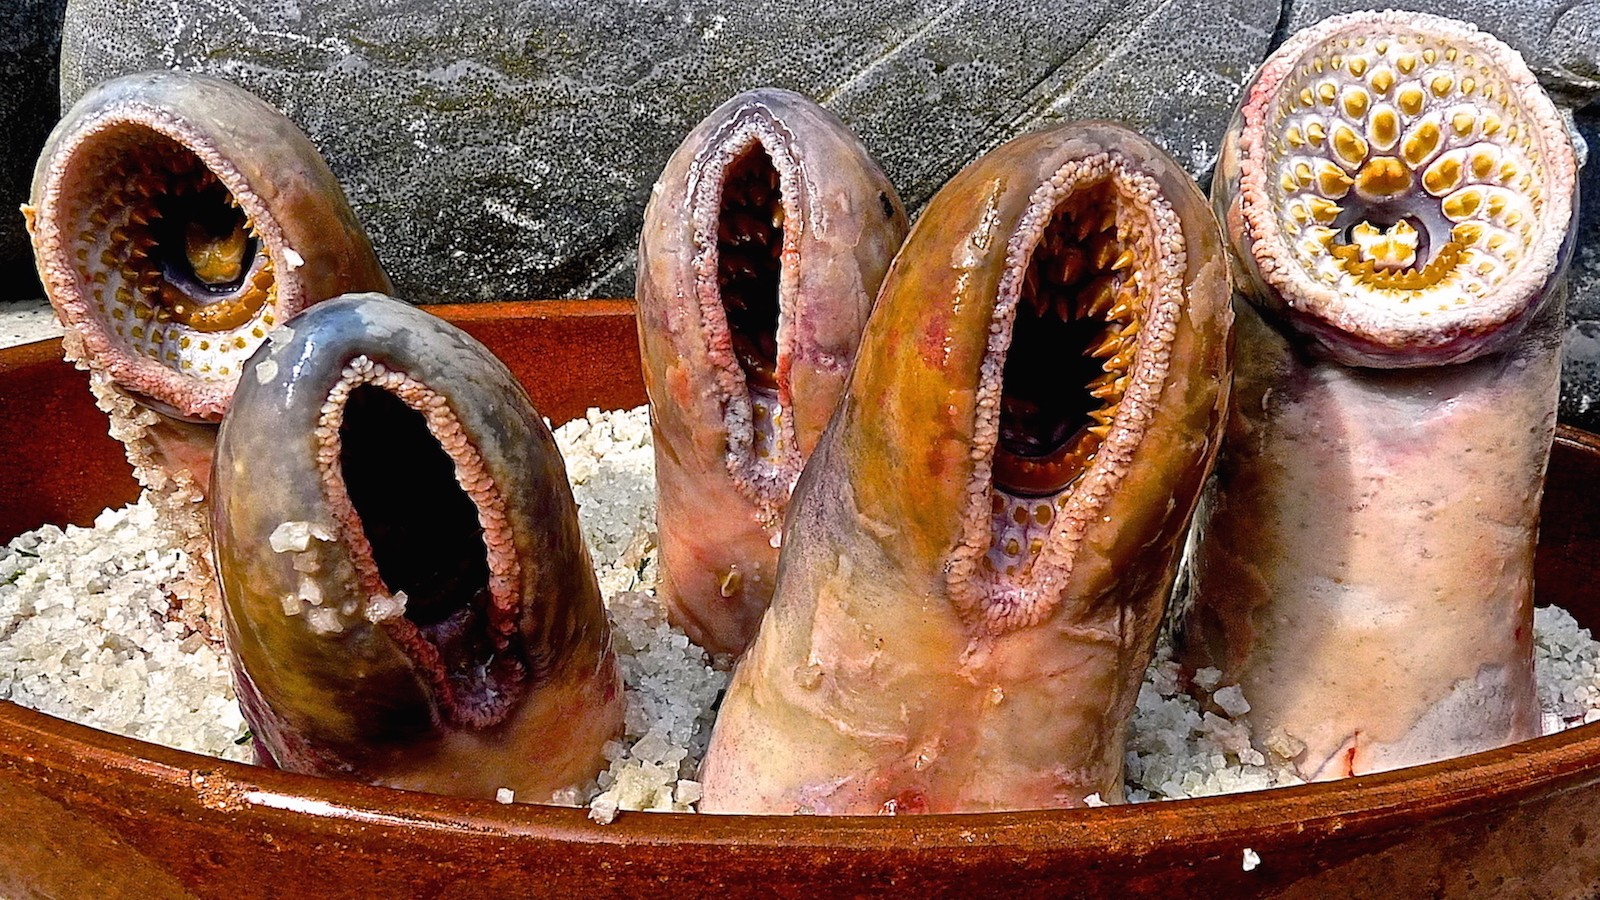 The Sea Lamprey Society Gathered To Eat The Most Gruesome Animal In